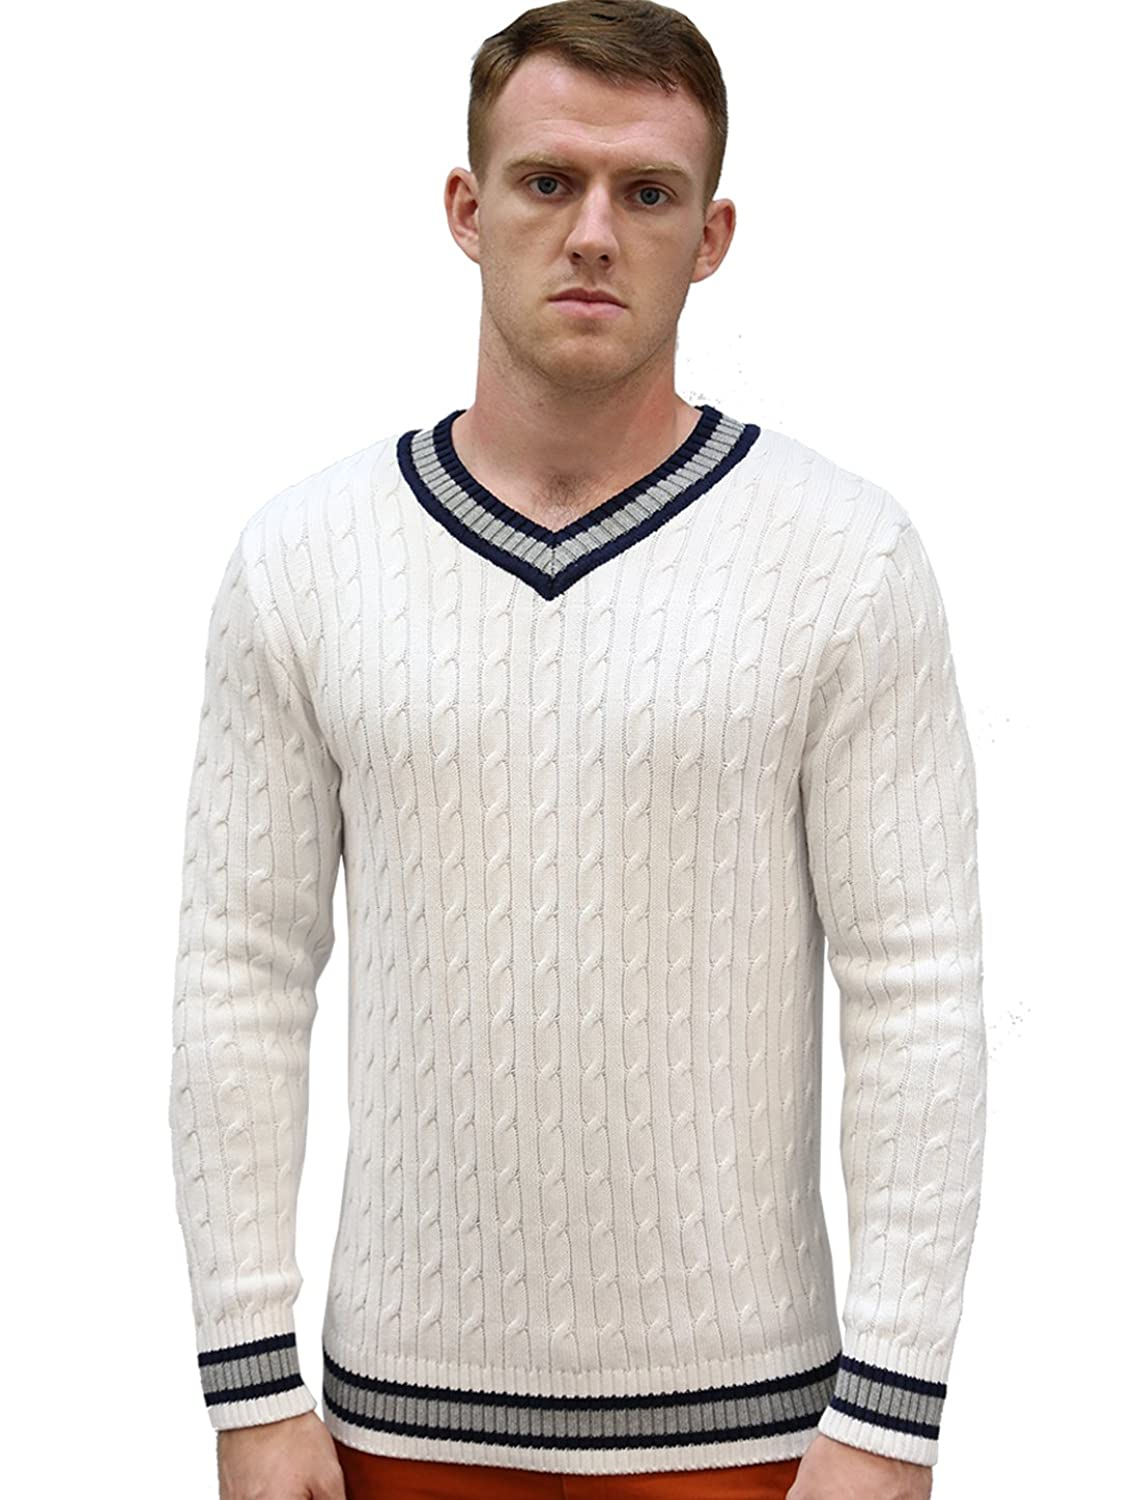 Edwardian Men's Shirts & Sweaters Allegra K Men V Neck Cable Pattern Ribbed Long Sleeves Pullover Knitted Sweater $32.85 AT vintagedancer.com